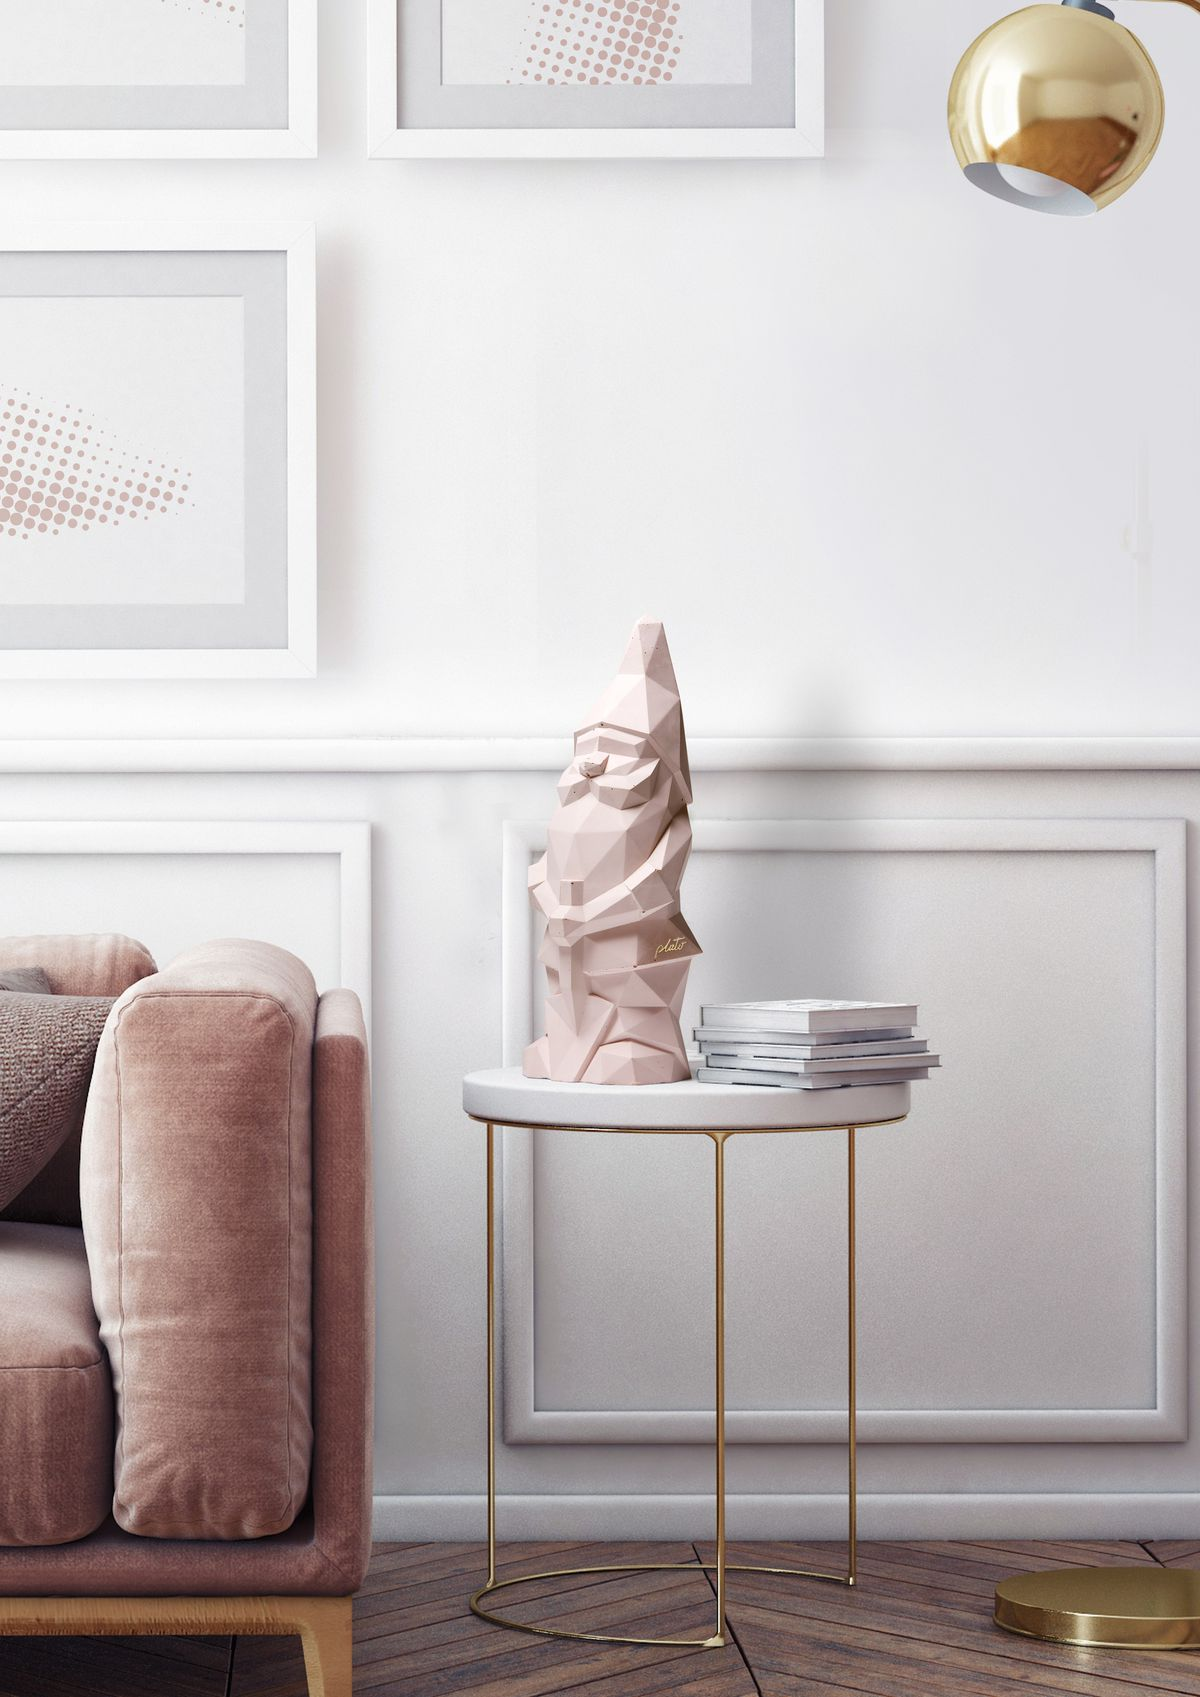 Pink garden gnome on side table